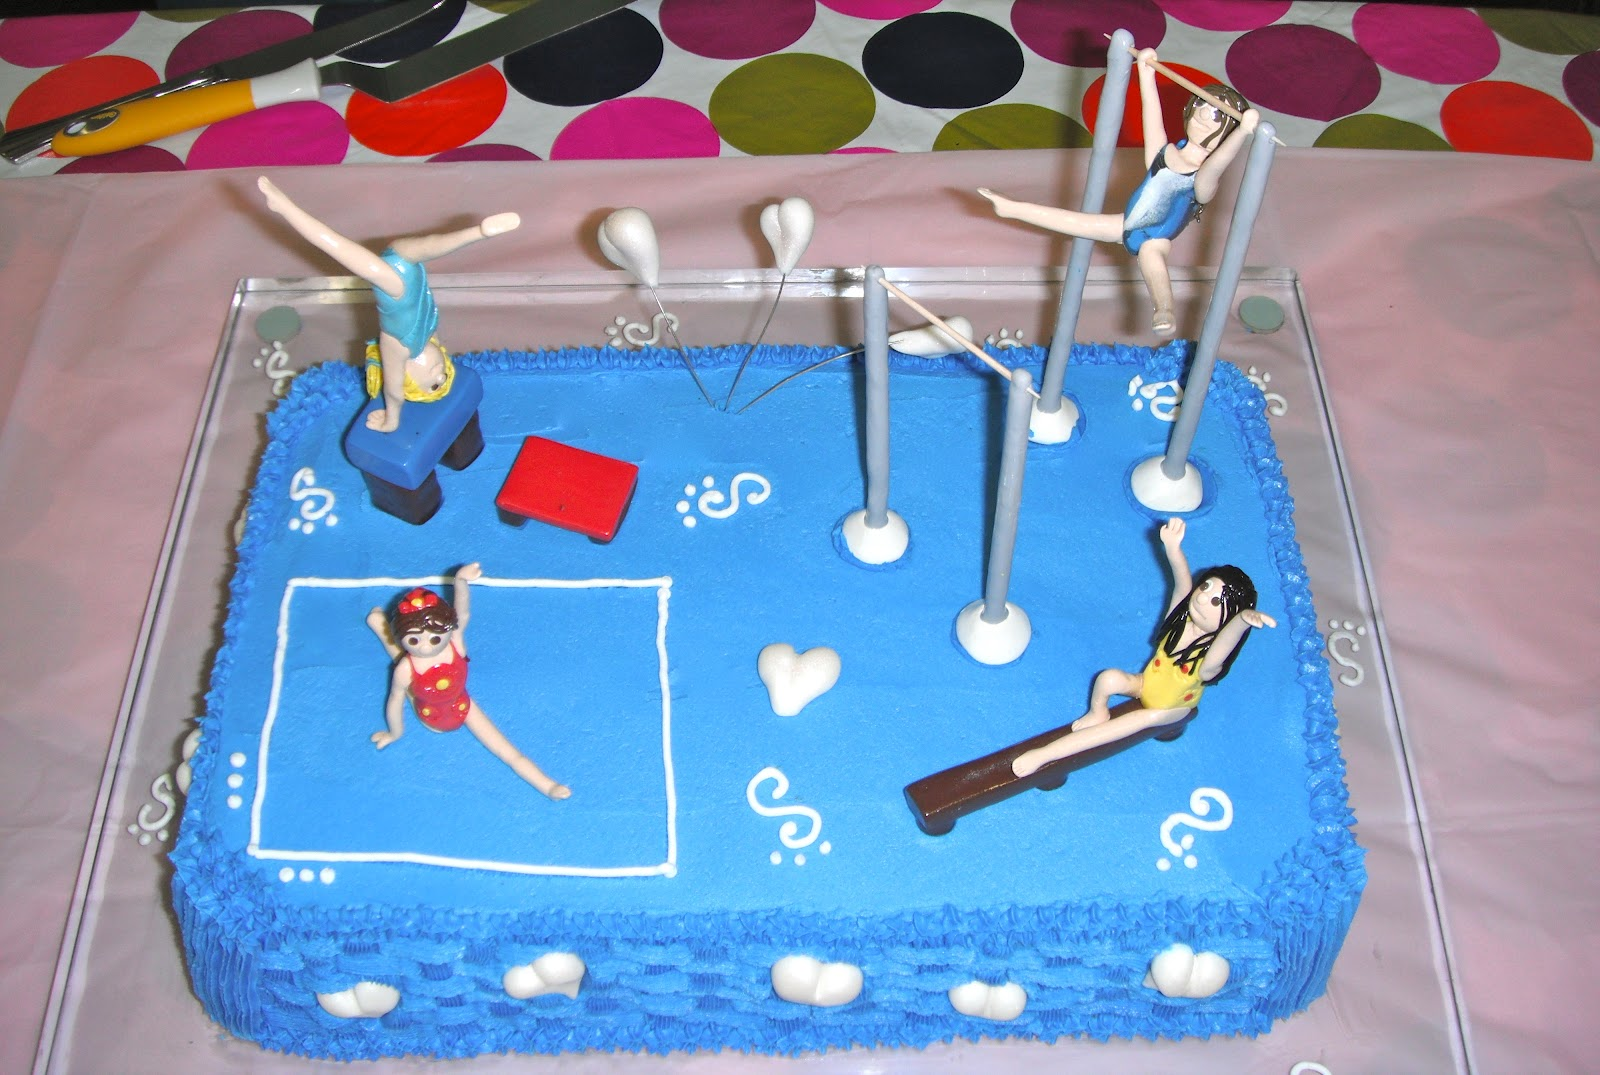 Gymnastic Cake Decorations Uk : P-ART-Y: How to make a Gymnastics Cake